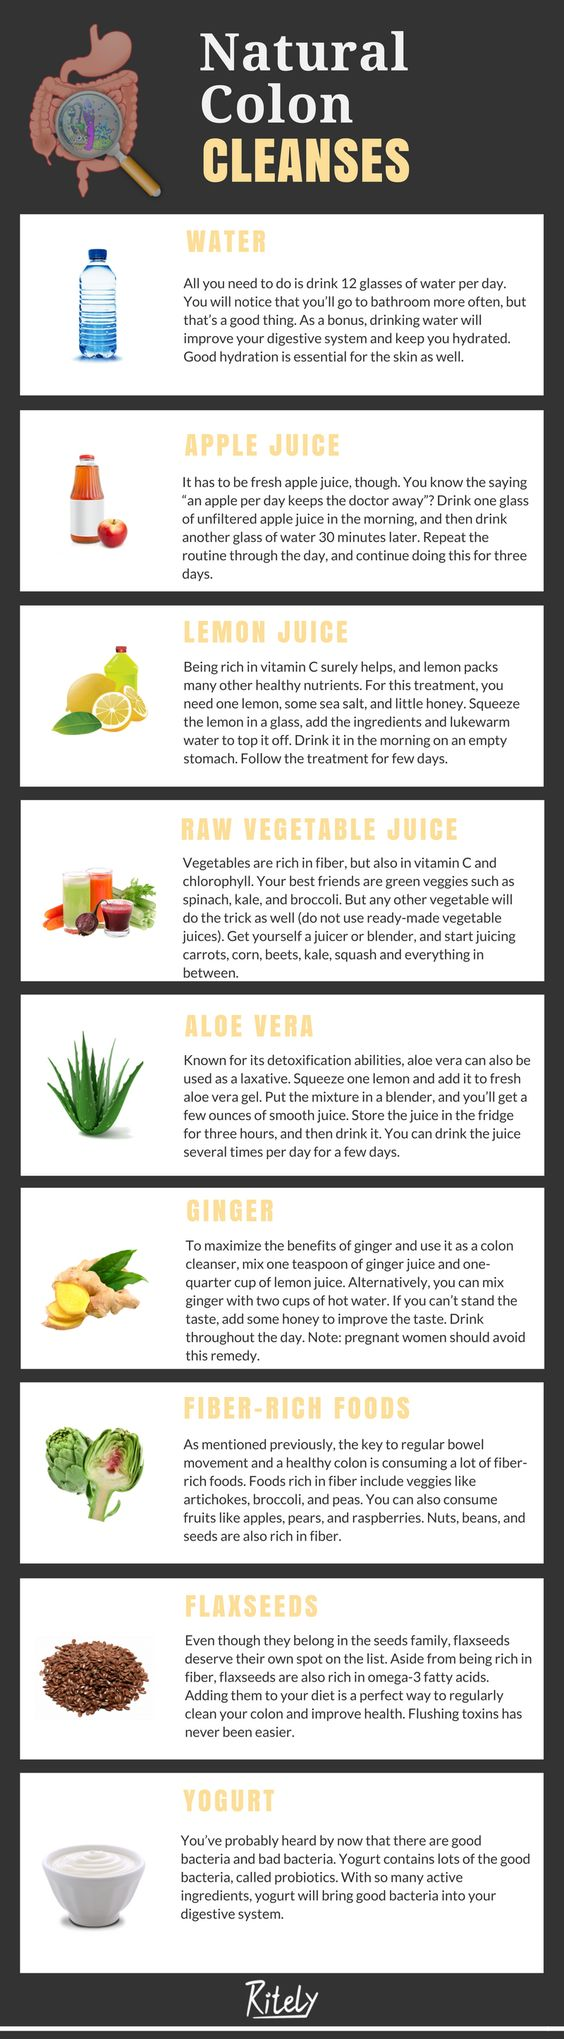 natural colon cleanse Infographic